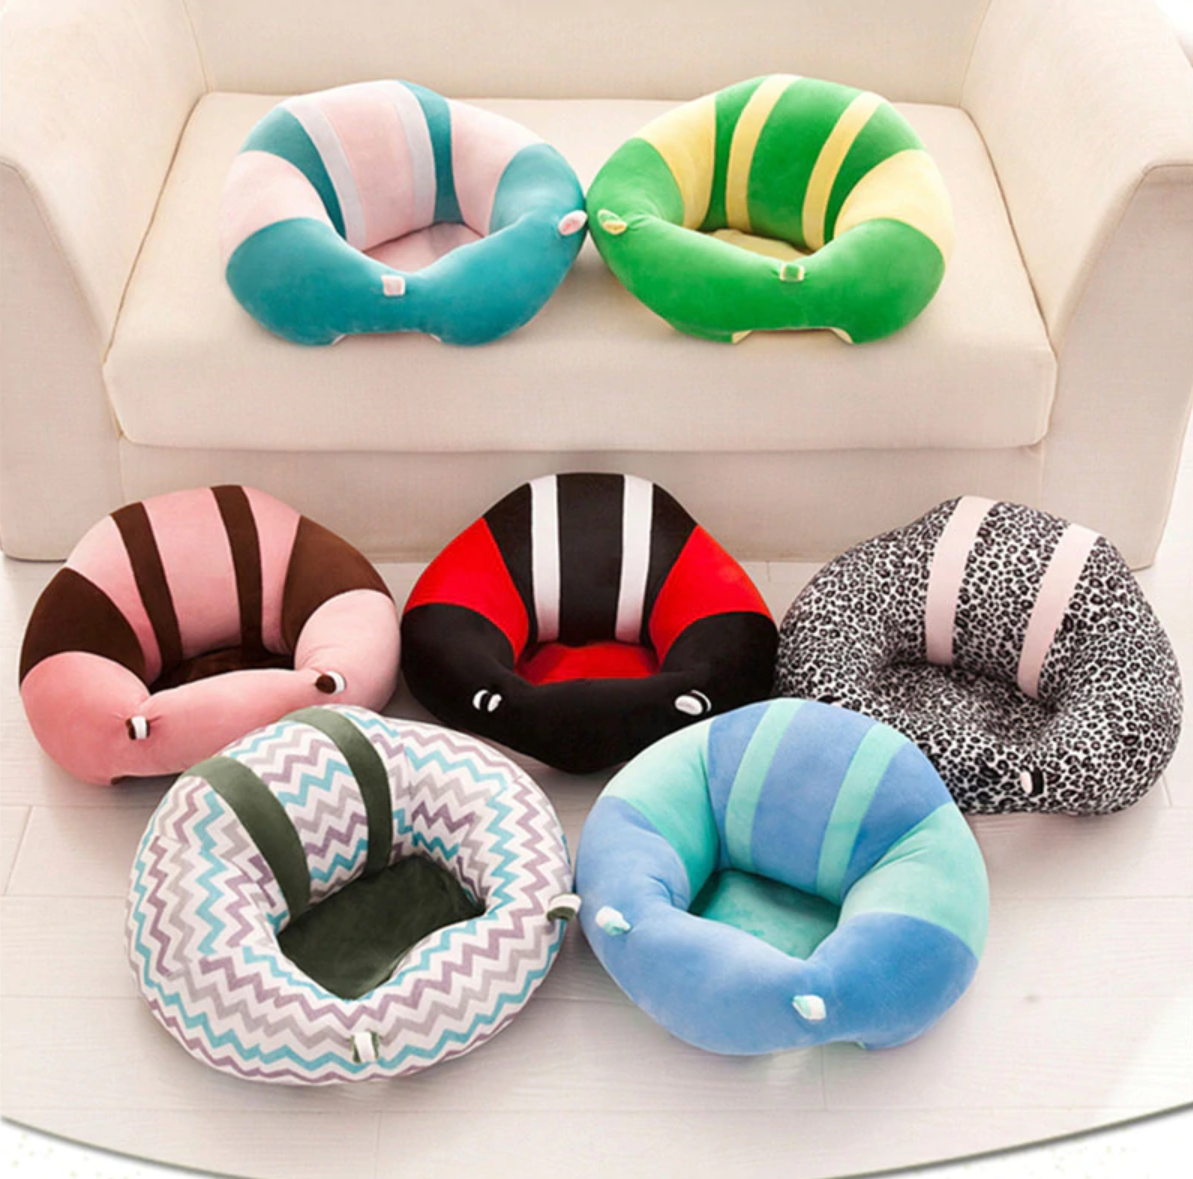 A baby sofa for your darling to enjoy shows with you safely